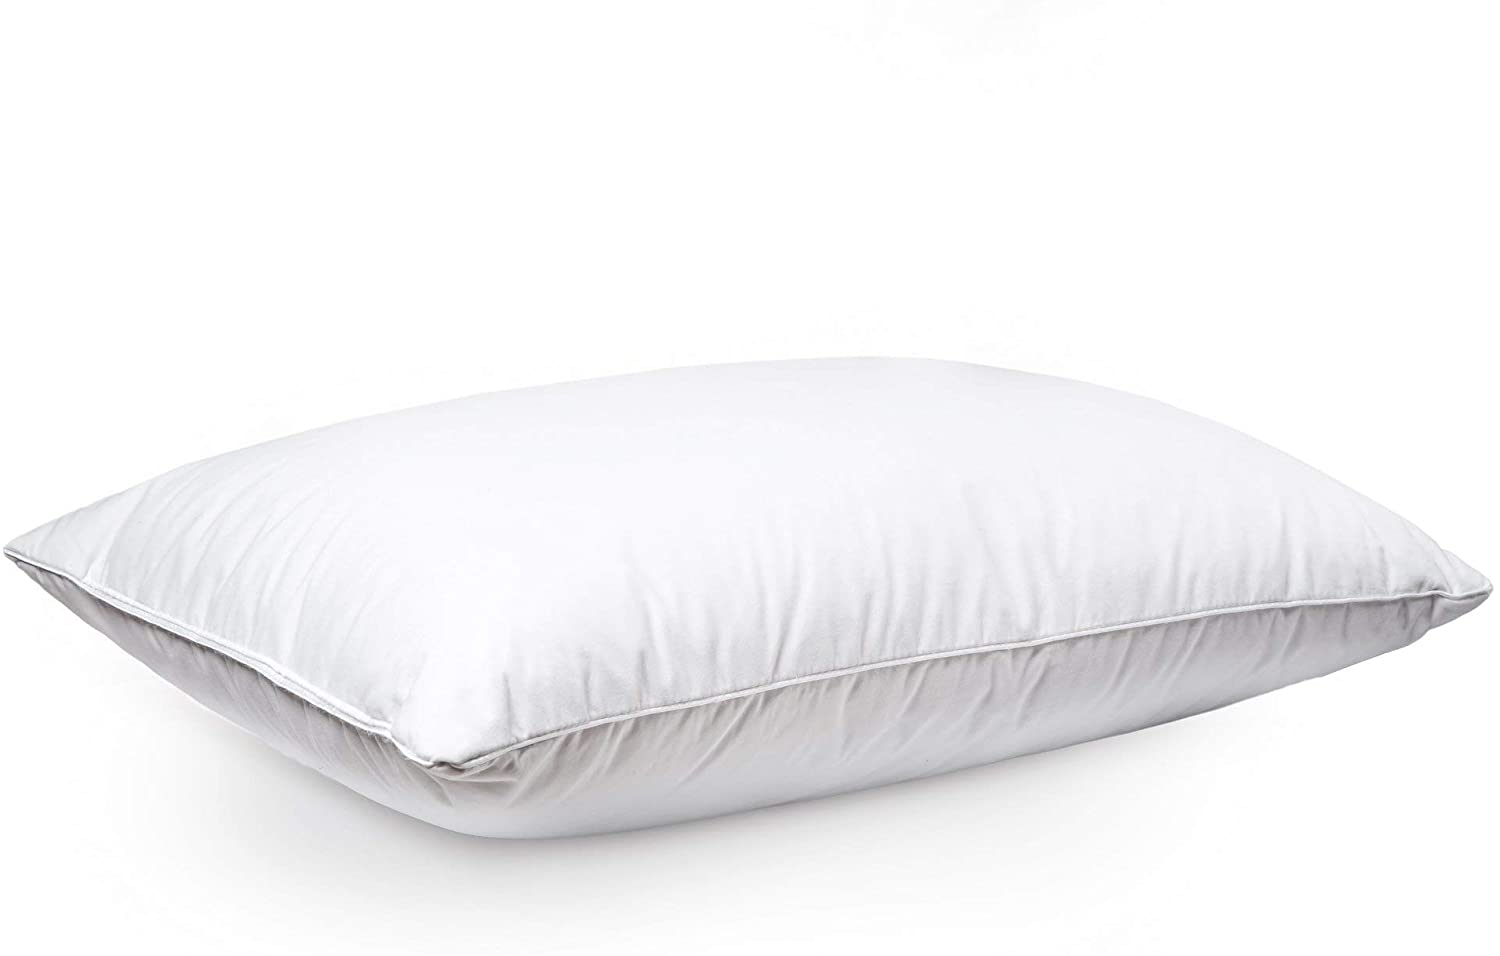 ZISA DREAM Down and Feather Pillow- Feather Pillows